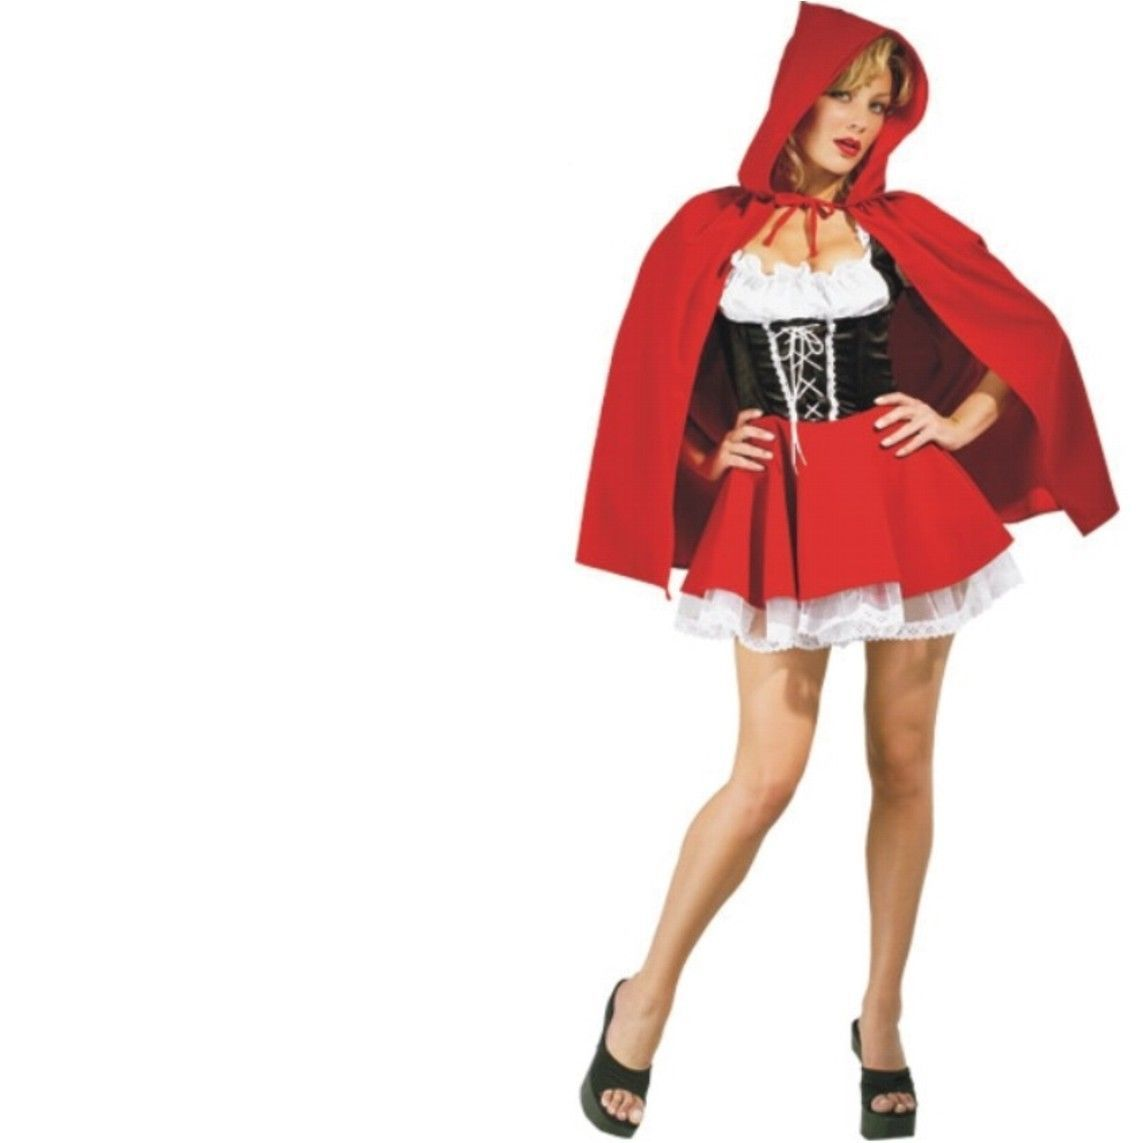 Costume - Adult Secret Wishes - Little Red Riding Hood - Large - Sexy Fantasy